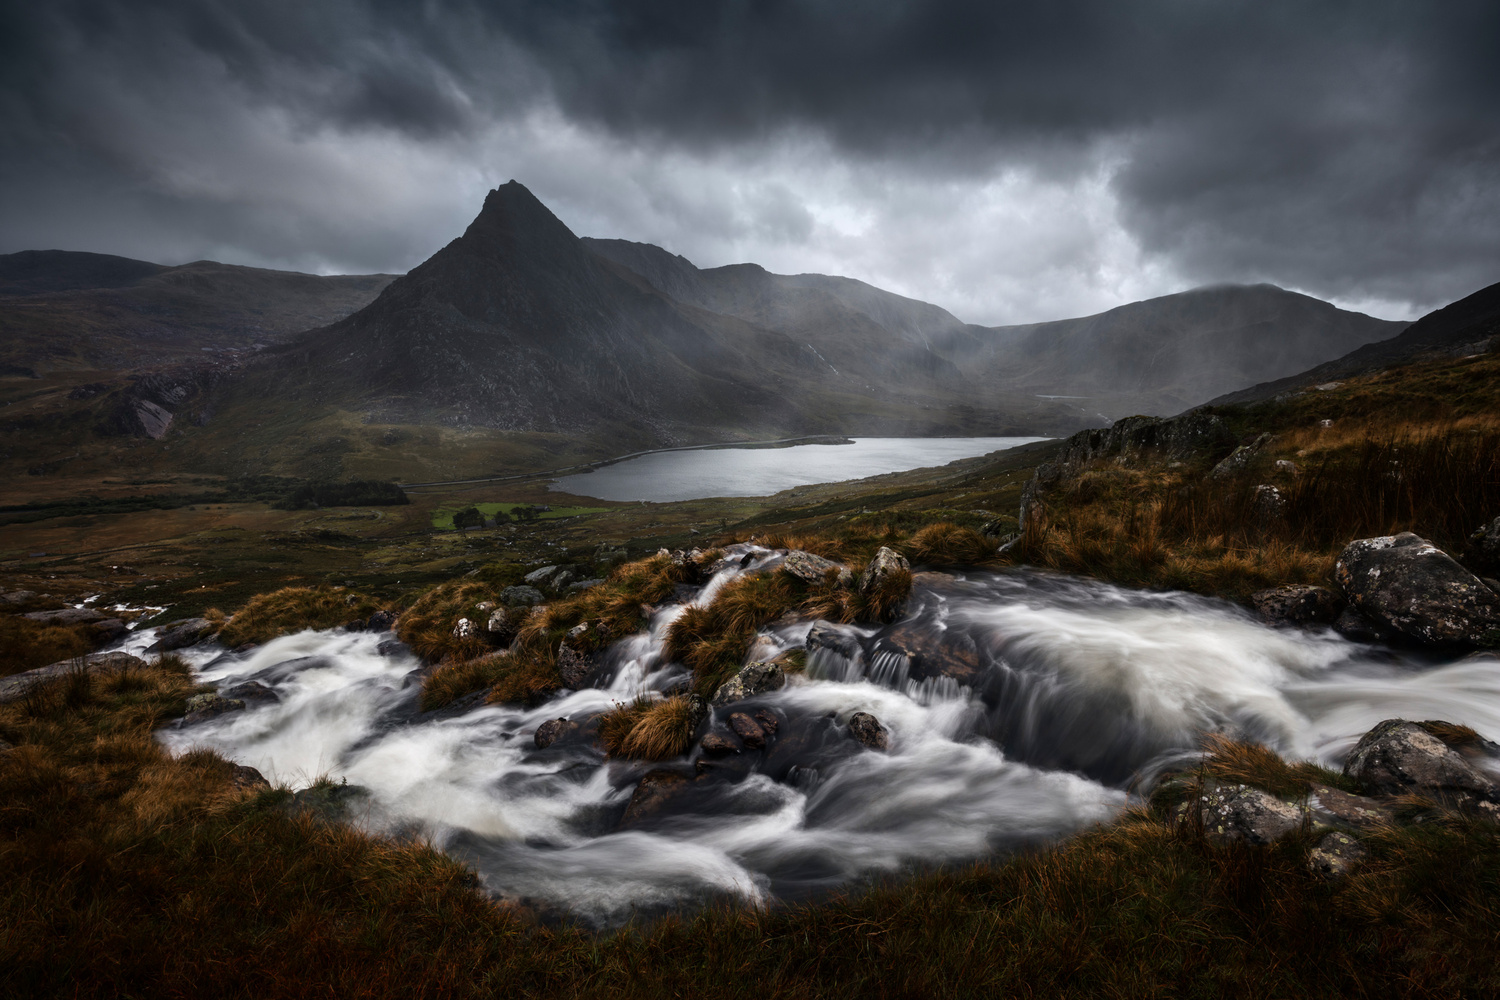 Snowdonia - Mt. Tryfan by Mads Peter Iversen